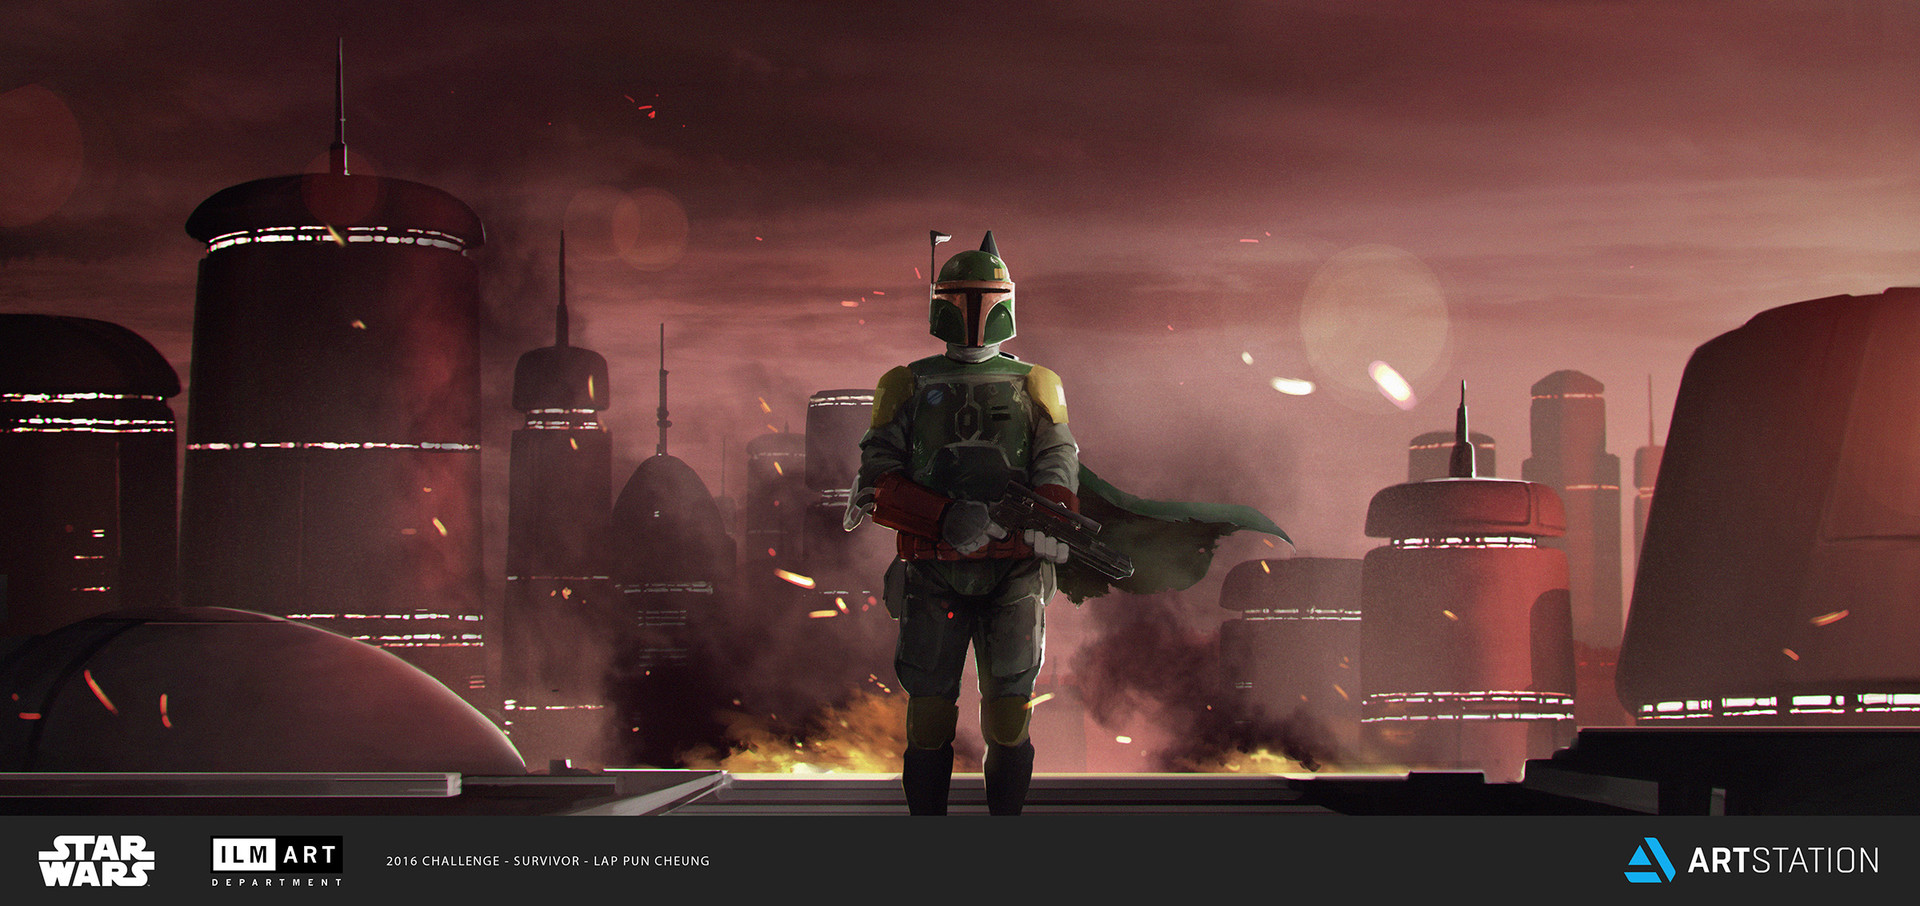 Lap pun cheung the moment keyframe burning cloud city v3 watermarked online